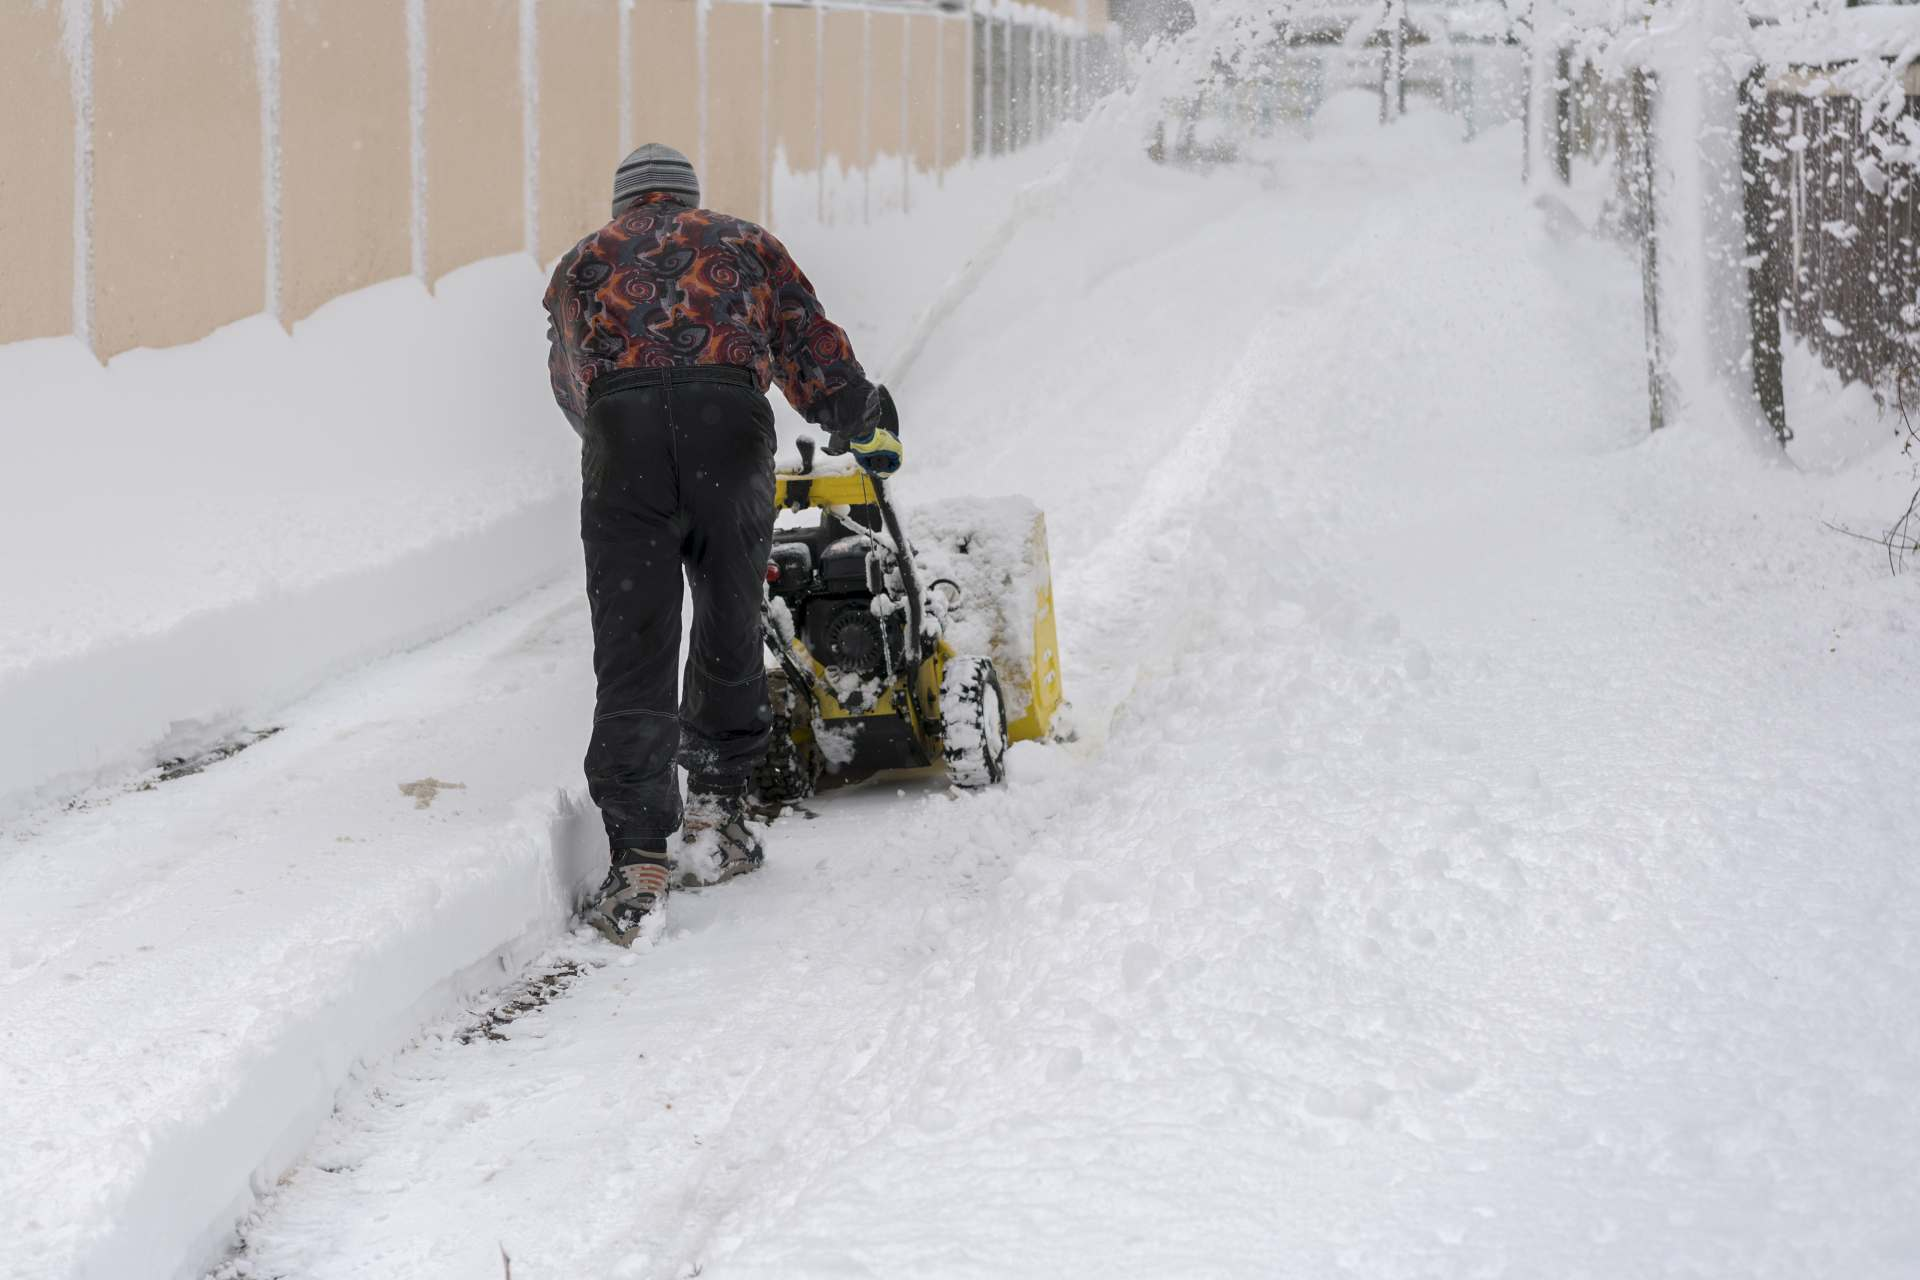 Man Operating Snow Blower to Remove Snow